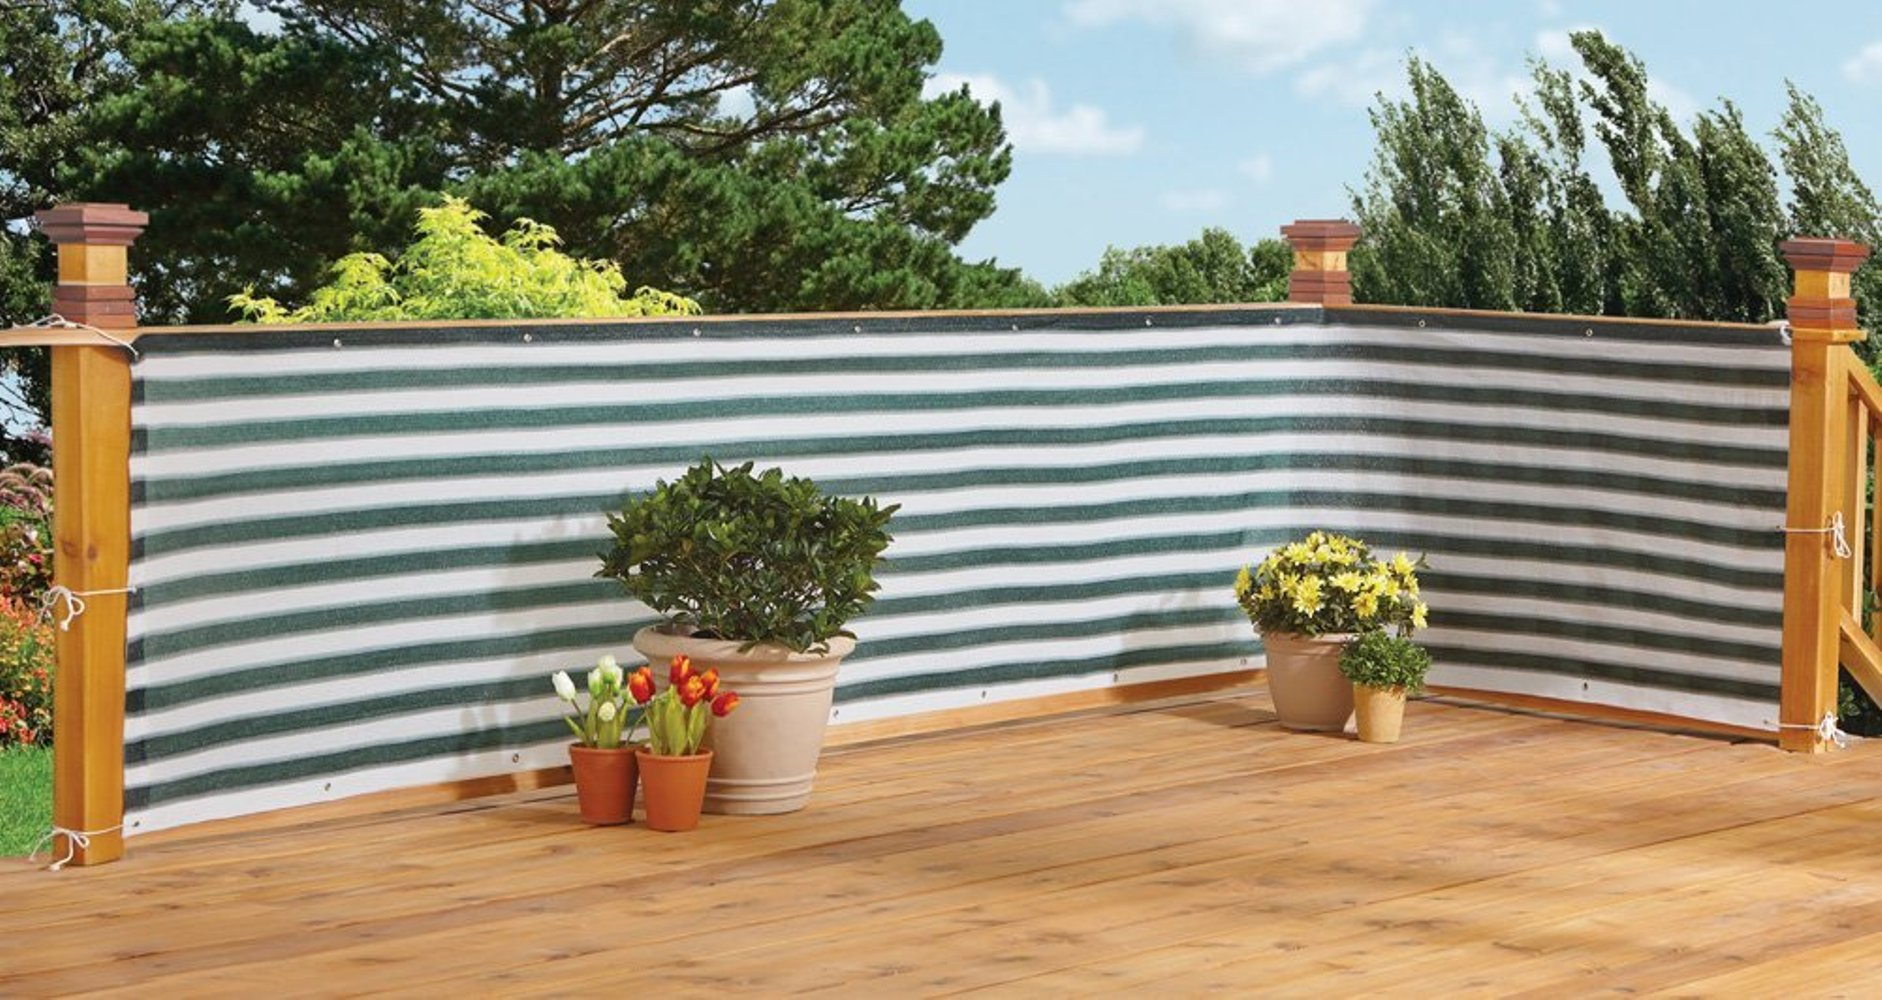 Stylish Outdoor Privacy Screen � Balcony, Deck or Patio Fence Privacy Screen Green White by Imperial Home